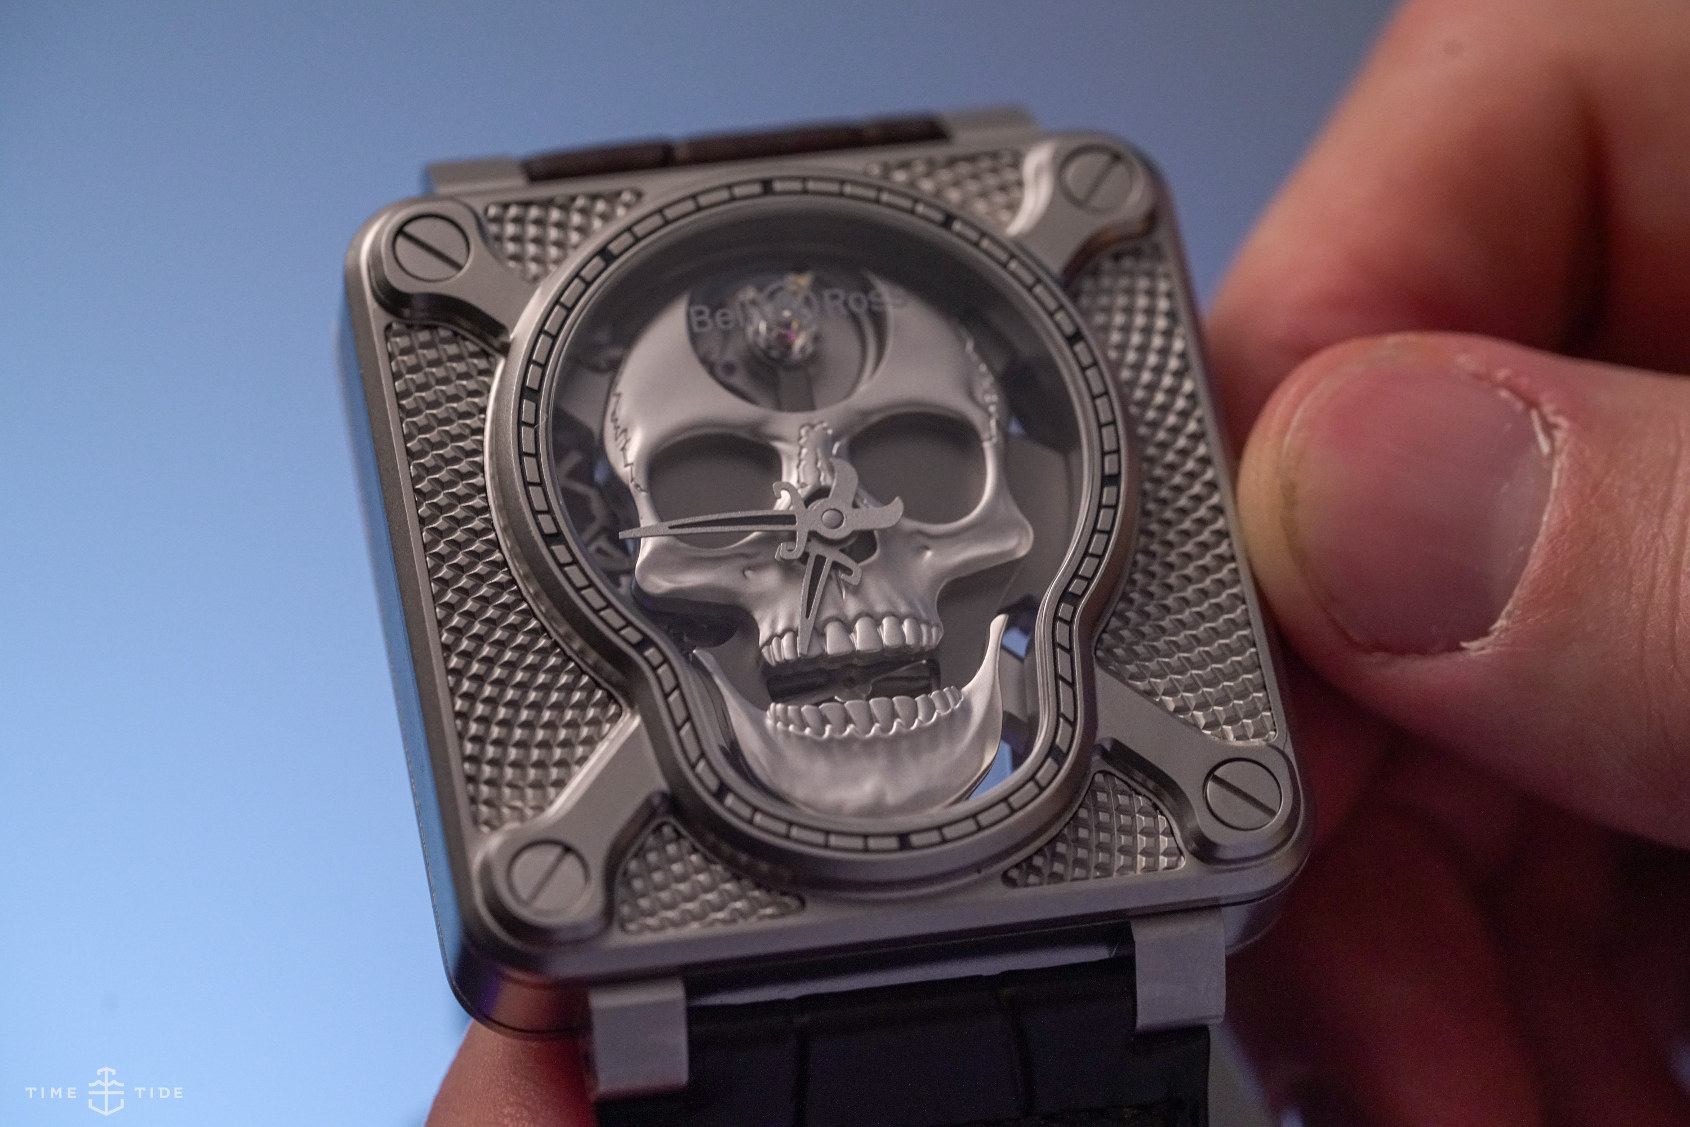 HANDS-ON: Put a smile on your dial – the Bell & Ross BR 01 Laughing Skull